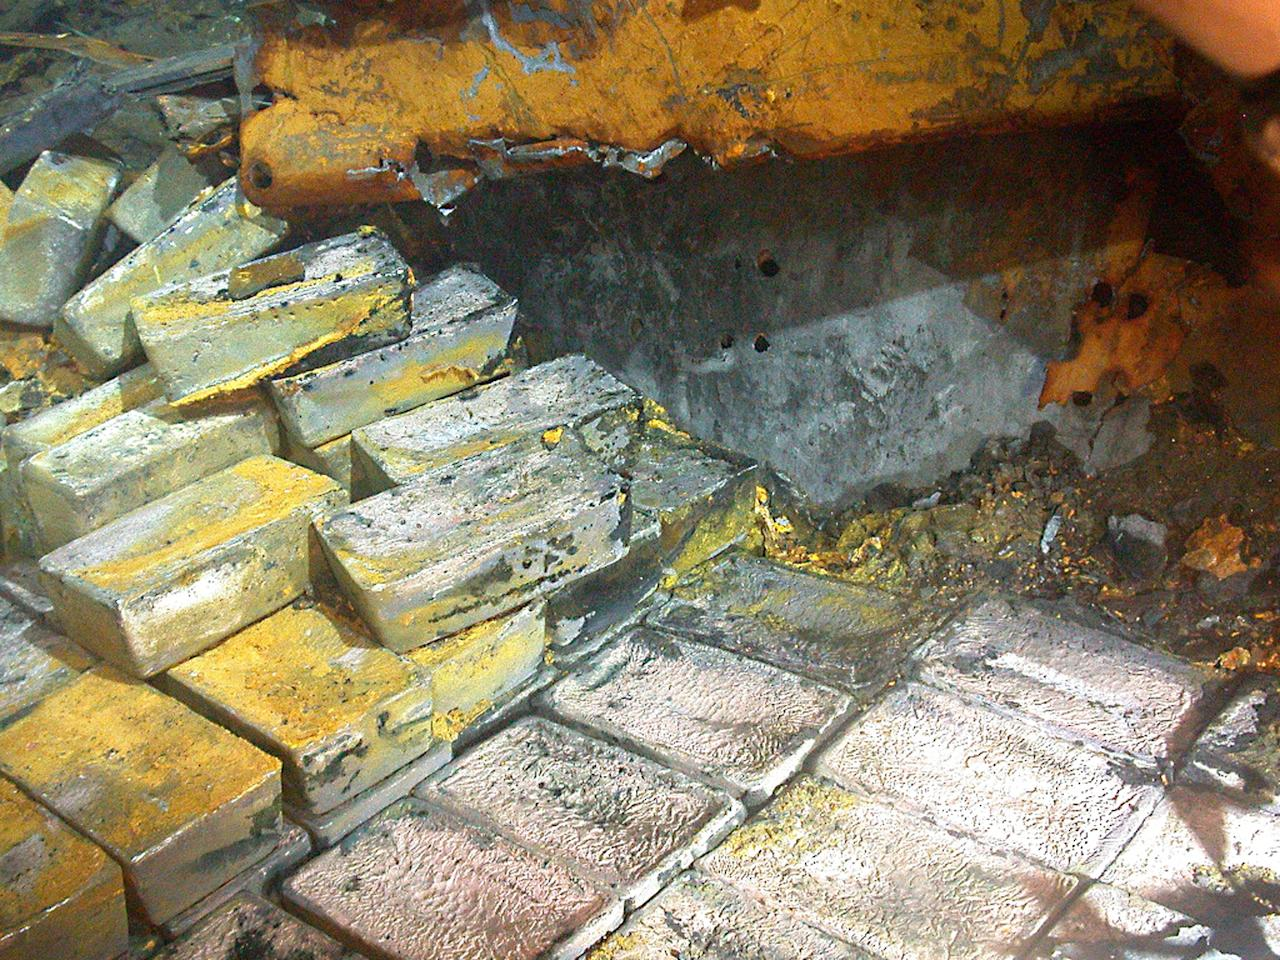 This image taken July 5, 2012 provided by Odyssey Marine, Inc. shows the discovery of silver on the SS Gairsoppa. Forty-eight tons of silver bullion has been recovered from the SS Gairsoppa and returned to the British Government the company announced Wednesday July 18, 2012. The record-breaking operation has so far produced the heaviest and deepest recovery of precious metals from a shipwreck. (AP Photo/Odyssey Marine Inc.)